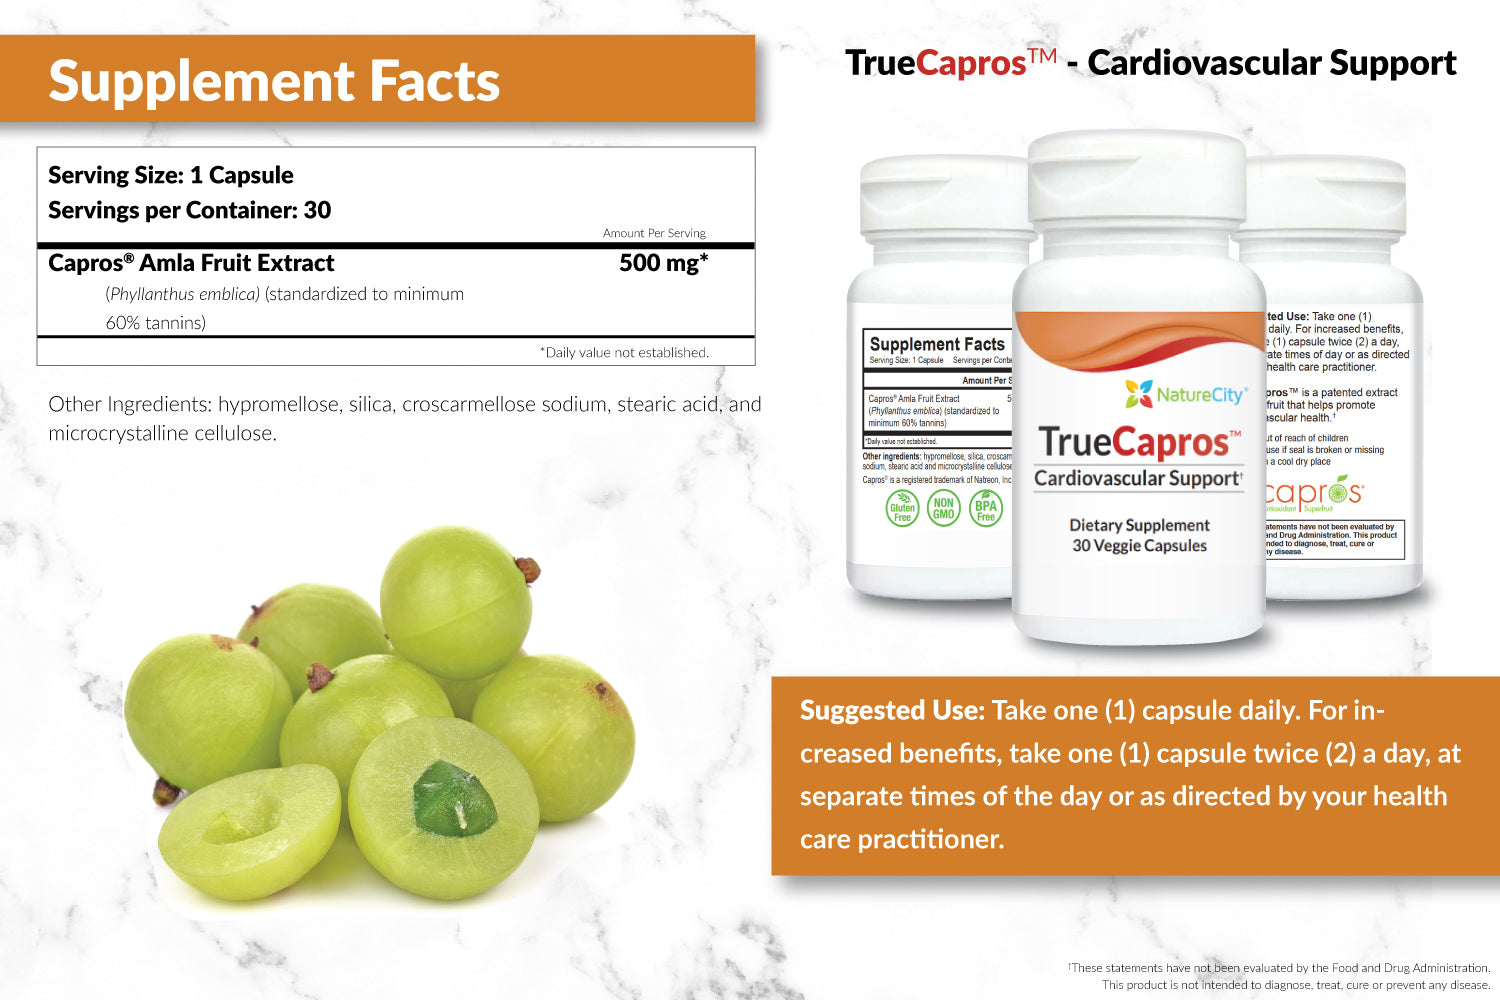 TrueCapros Heart Support Supplement Facts and Suggested Use